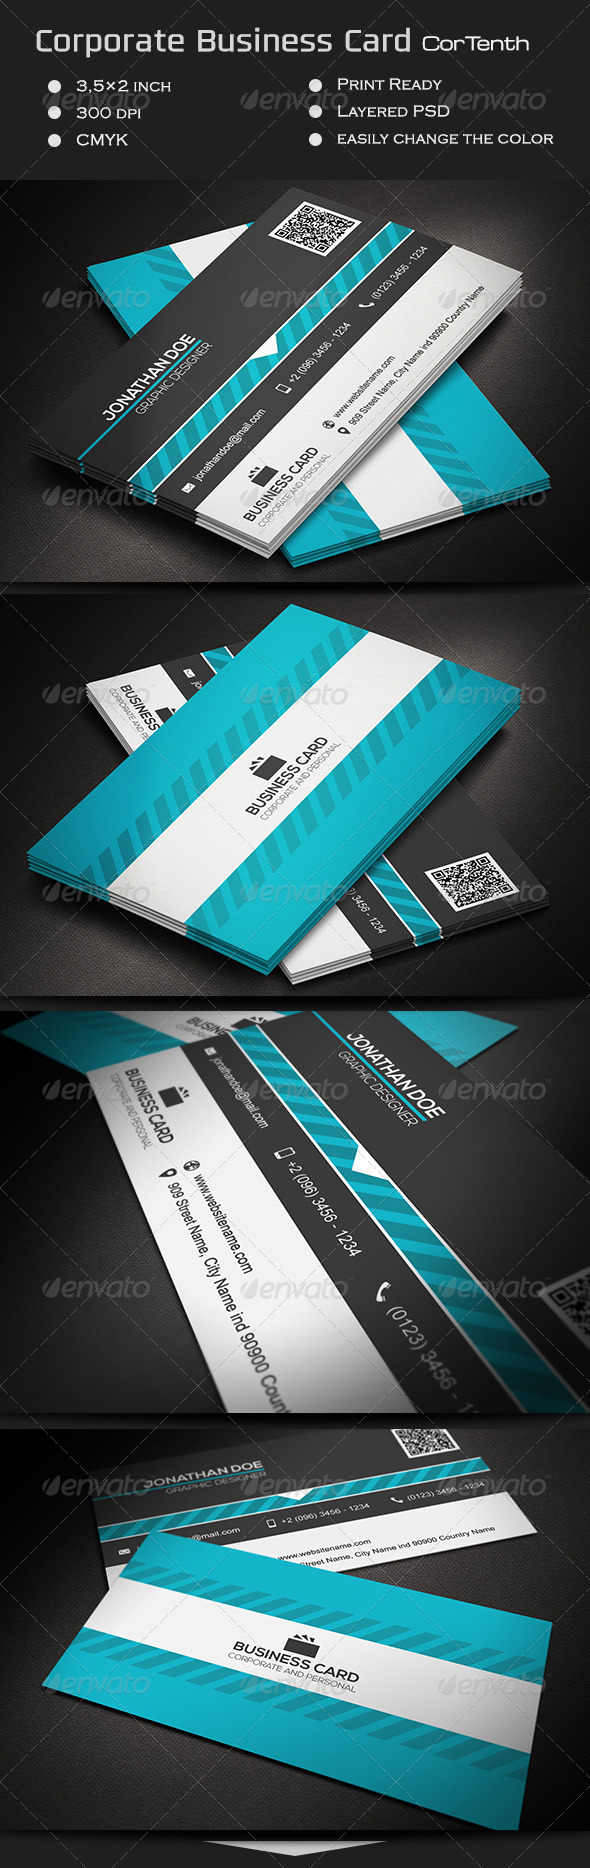 Corporate Business Card CorTenth - Corporate Business Cards